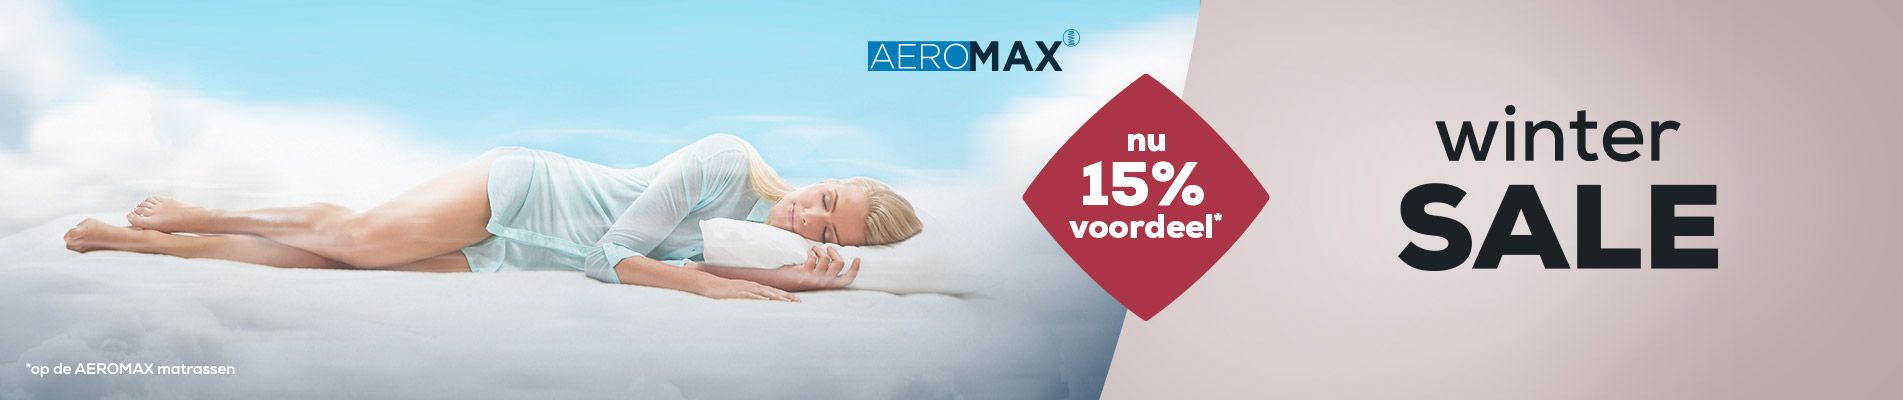 Winter Sale Matrassen AEROMAX banner | Swiss Sense